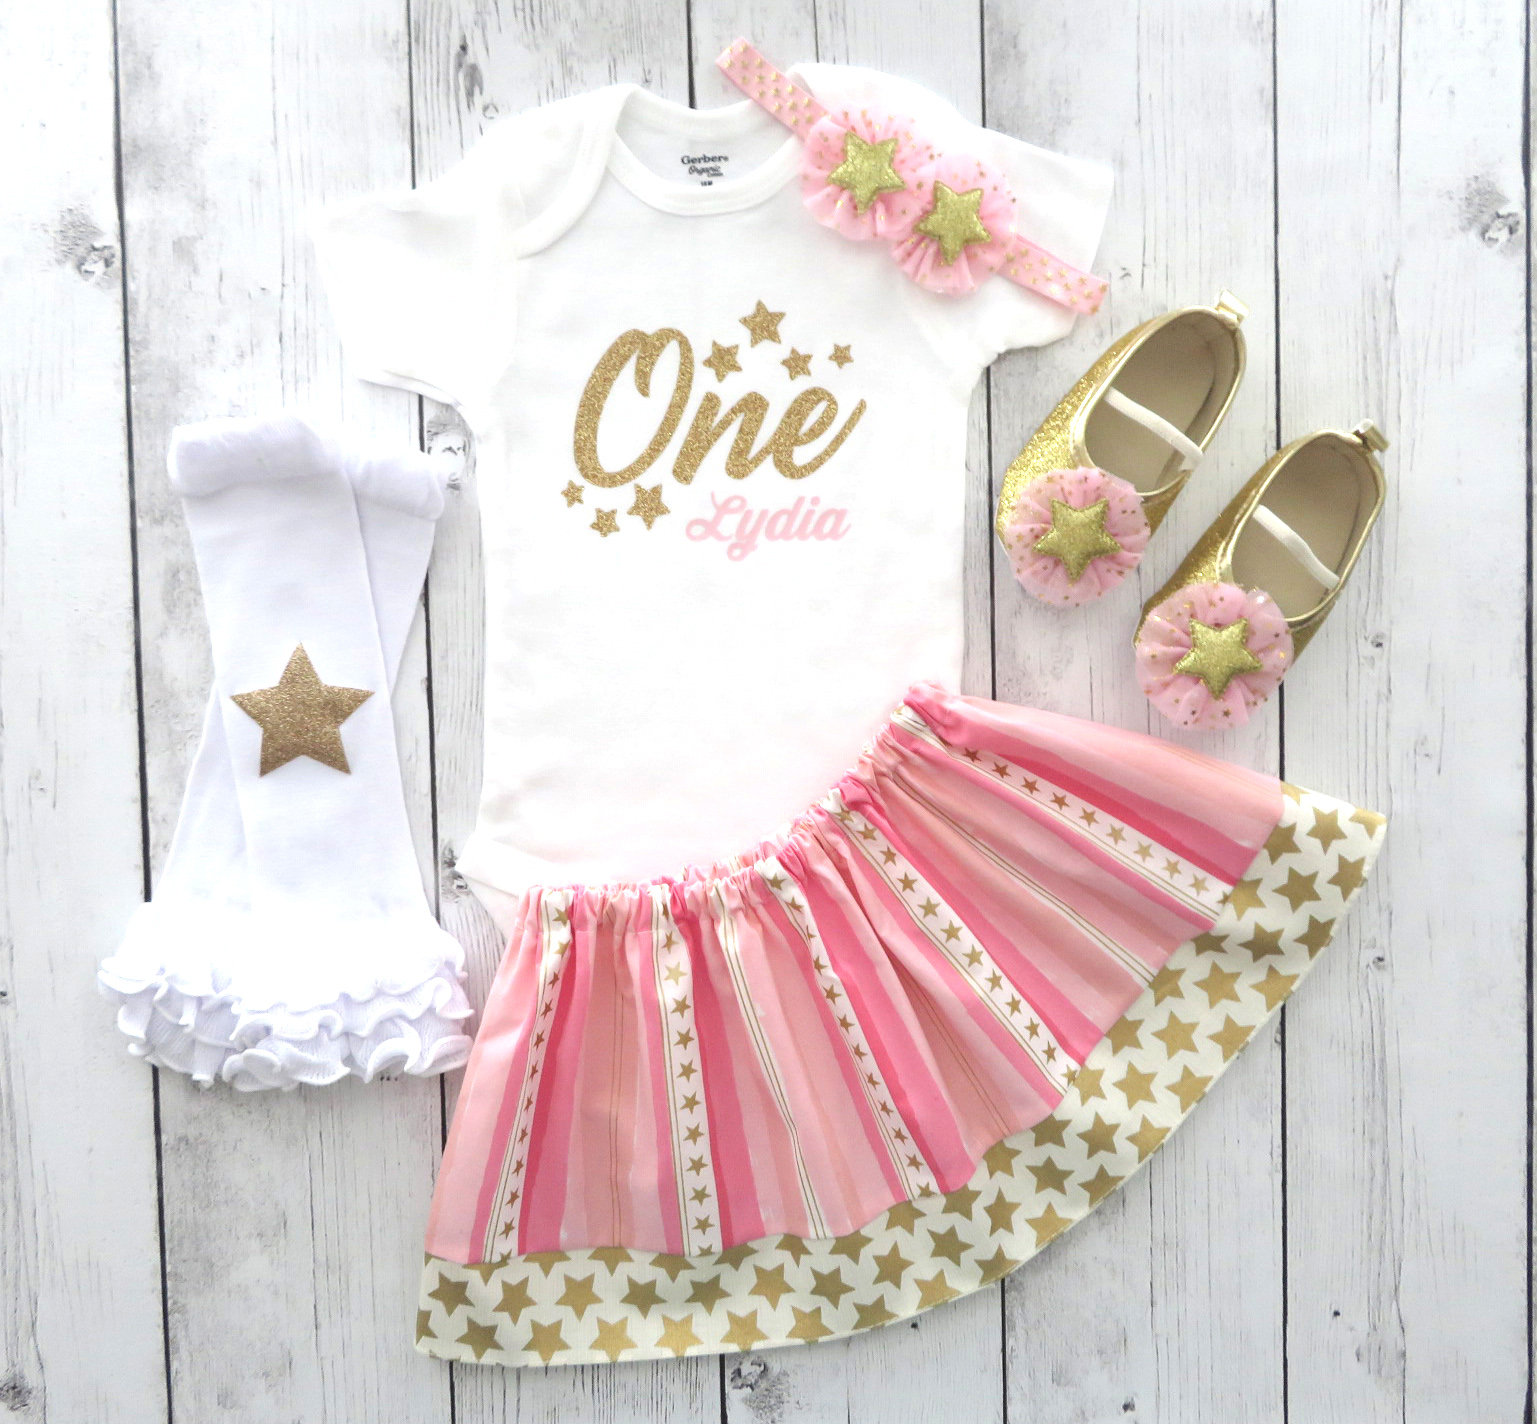 Twinkle Twinkle Little Star First Birthday Outfit in Pink and Gold - twinkle star birthday girl, twinkle twinkle birhtday outfit girl